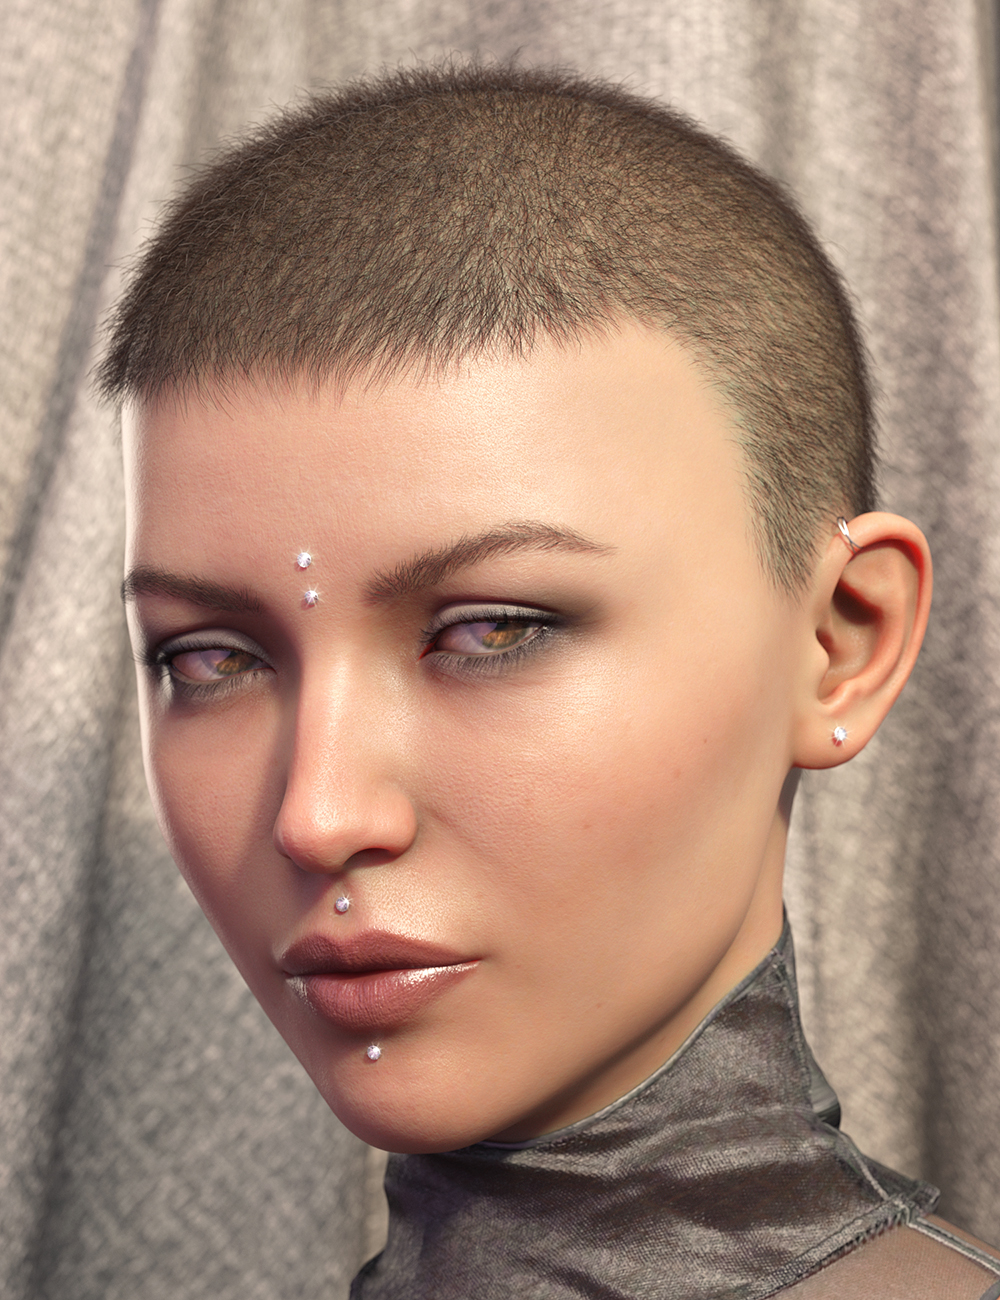 LI La Femme Hair for Genesis 8 Female(s) by: Laticis Imagery, 3D Models by Daz 3D